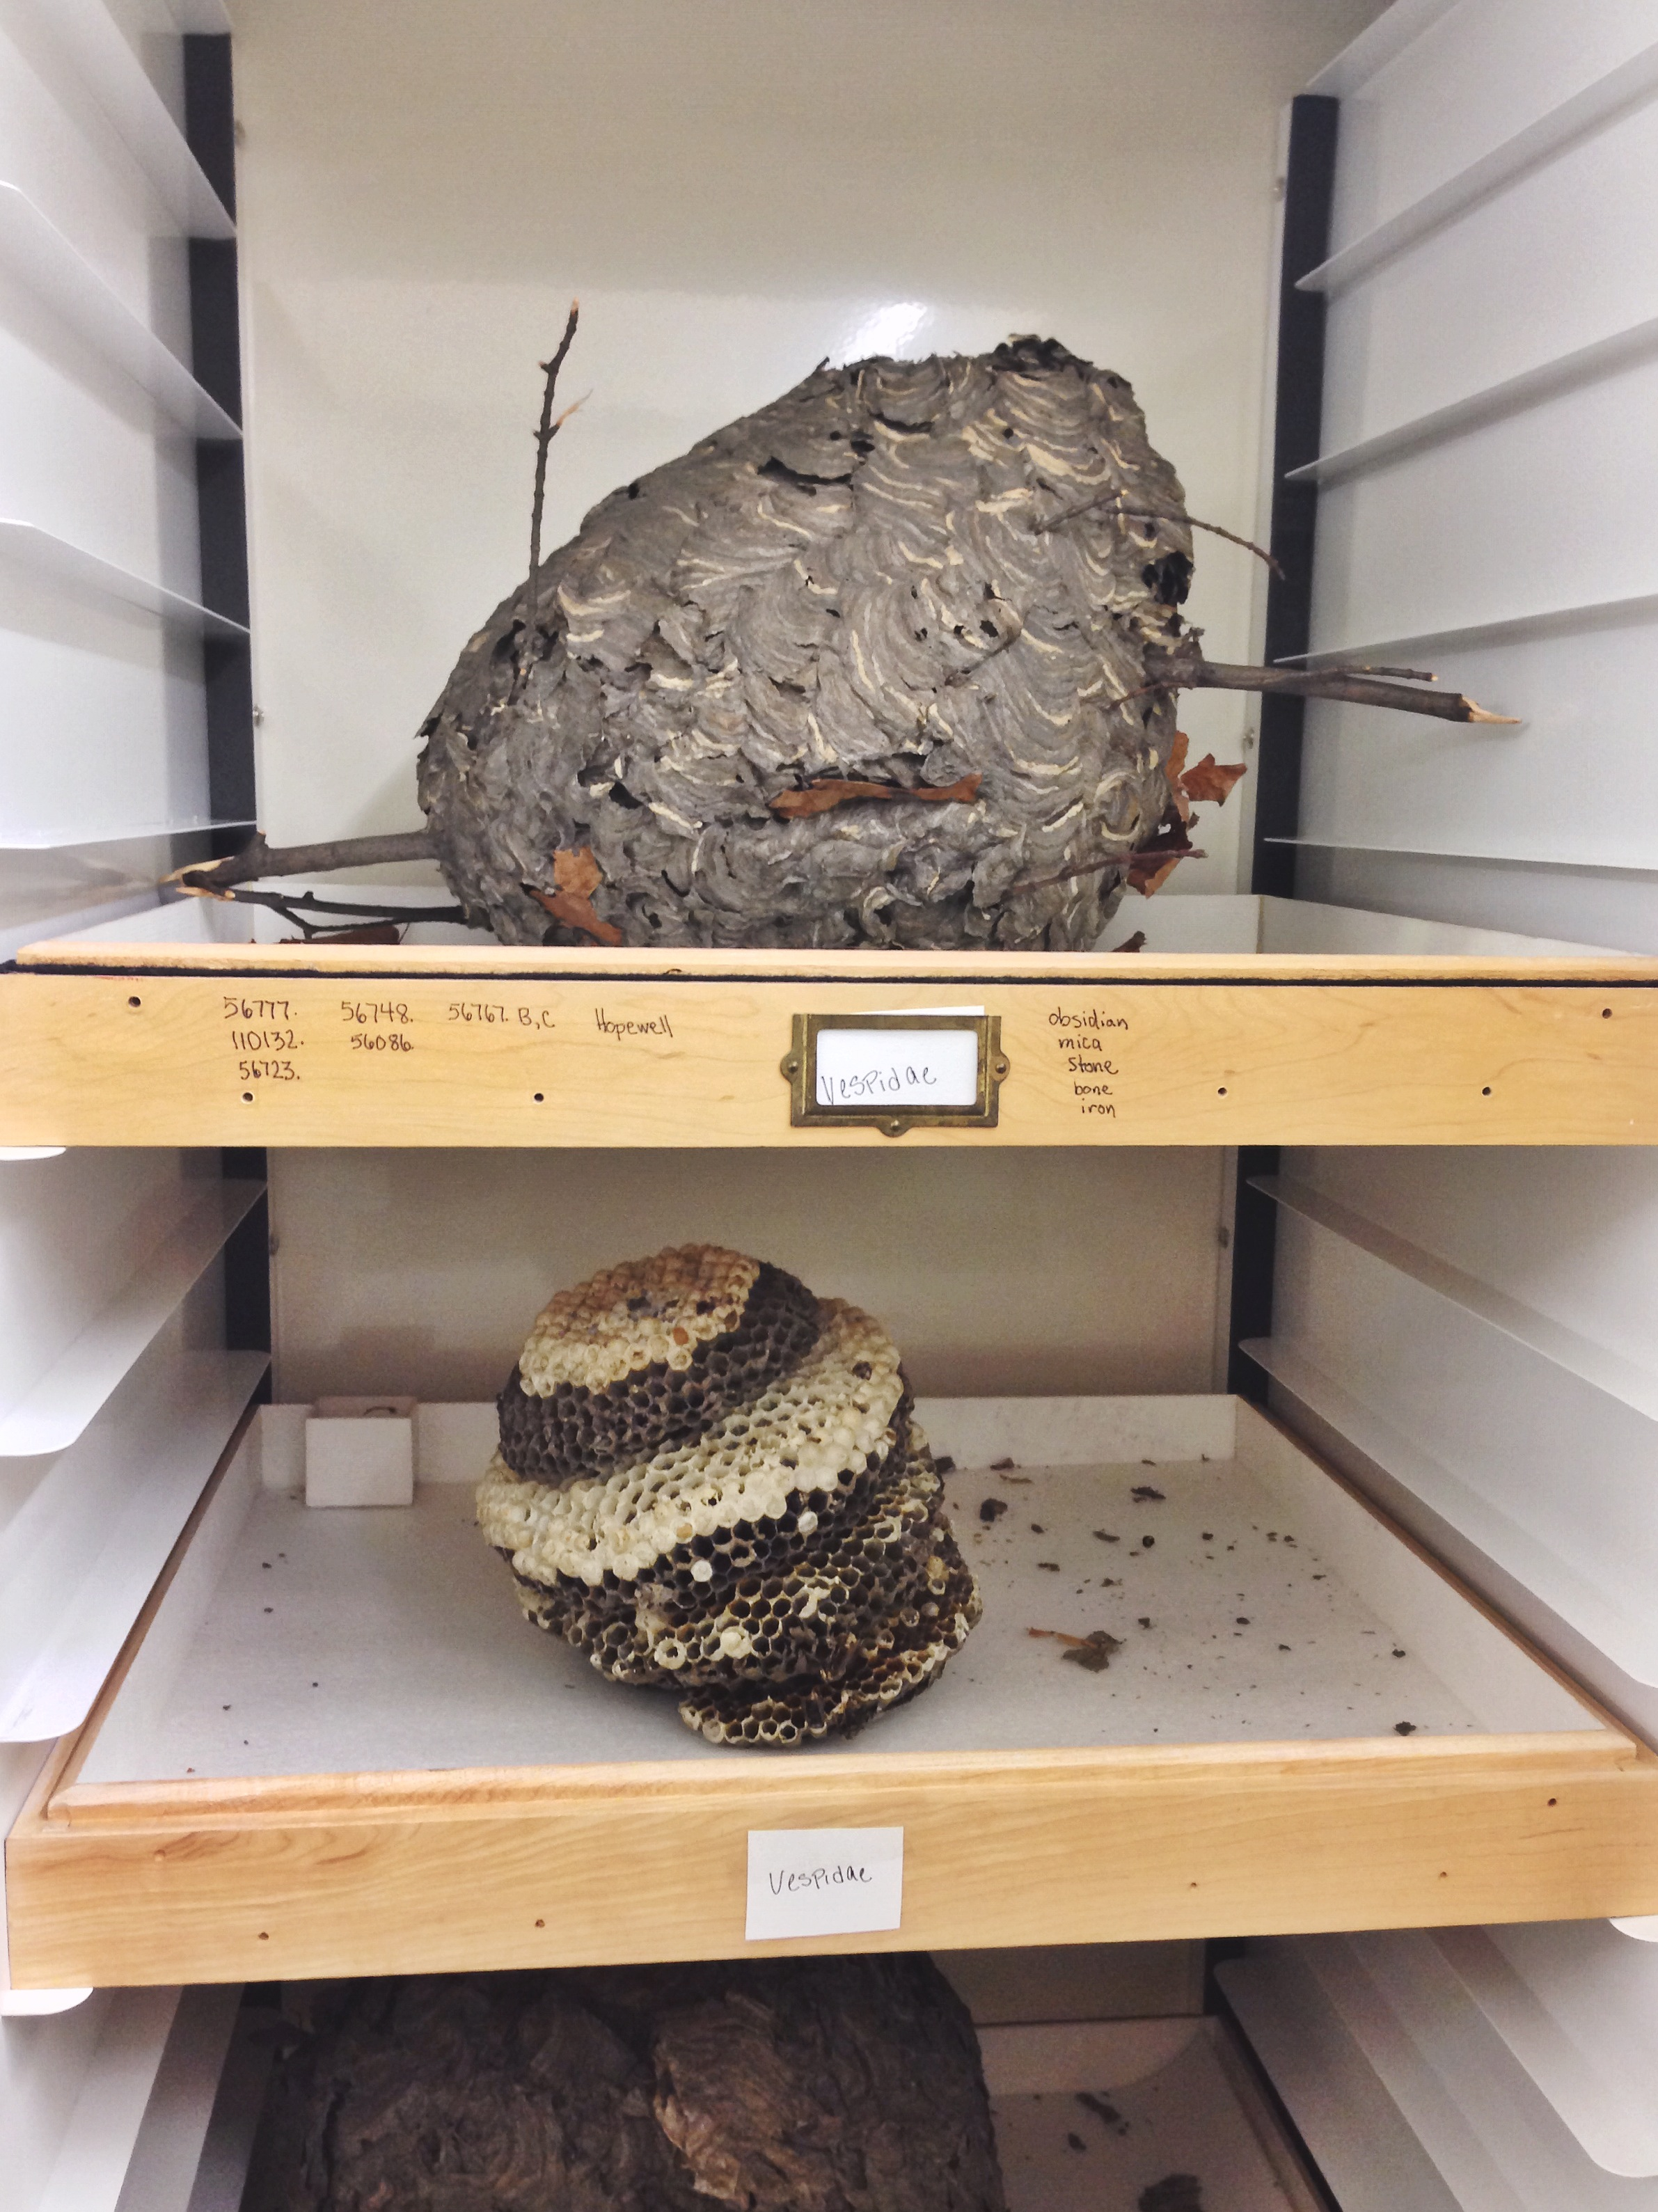 And this is a wasp nest. The nest on the top shelf is made from the wasps spit and any mud/sediment that they use. The nest on the lower shelf is the interior of the first nest. Pretty amazing, nature's little architects.